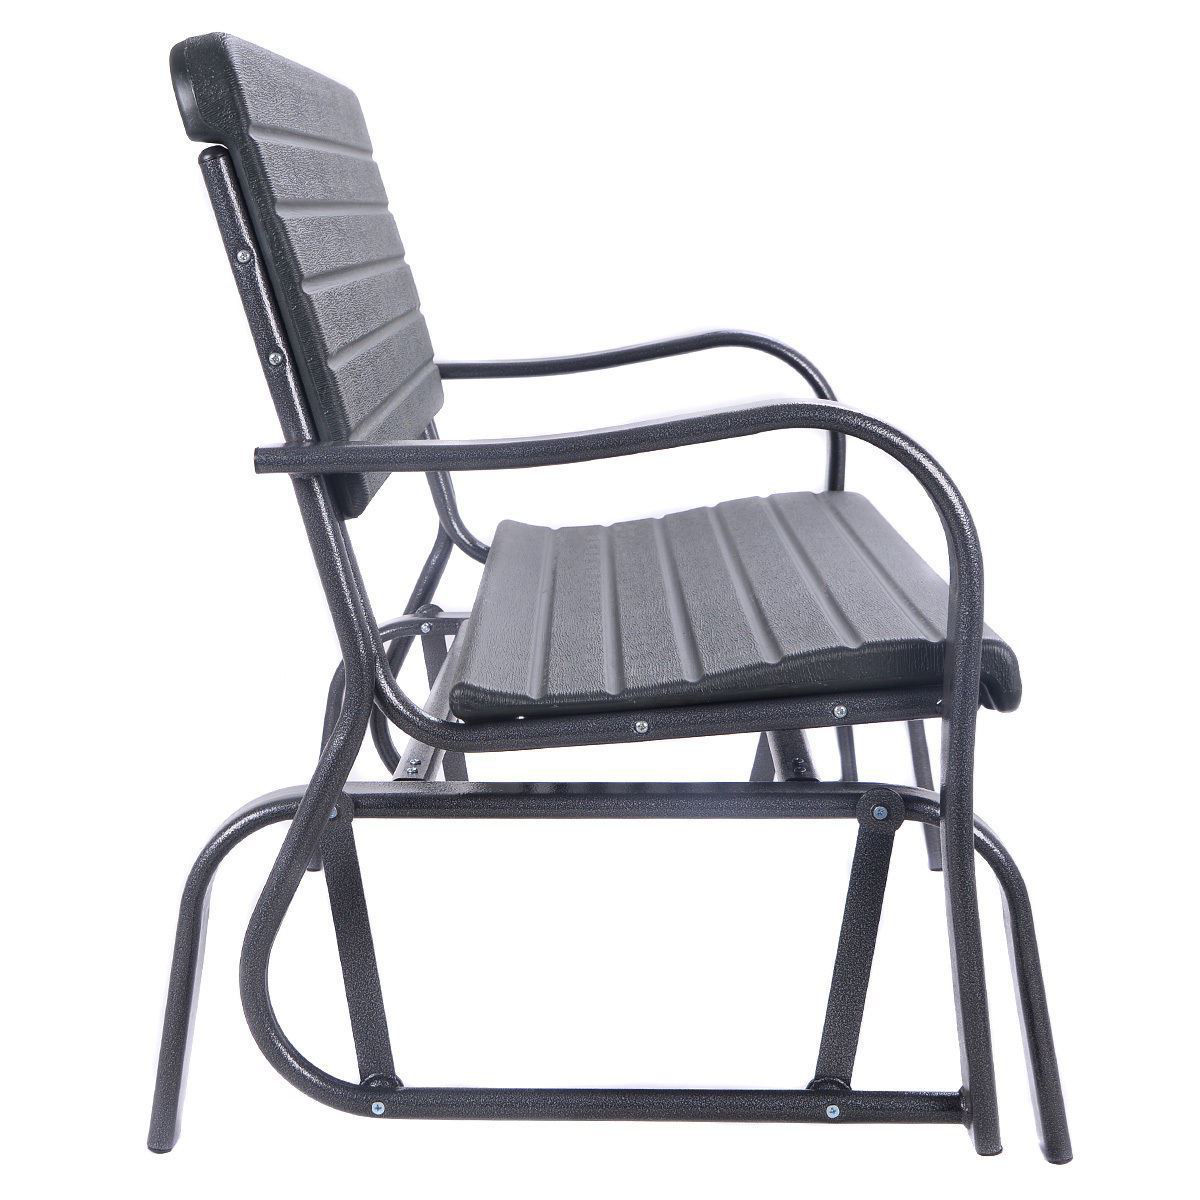 Picture of Outdoor Patio Swing Rocker Glider Bench